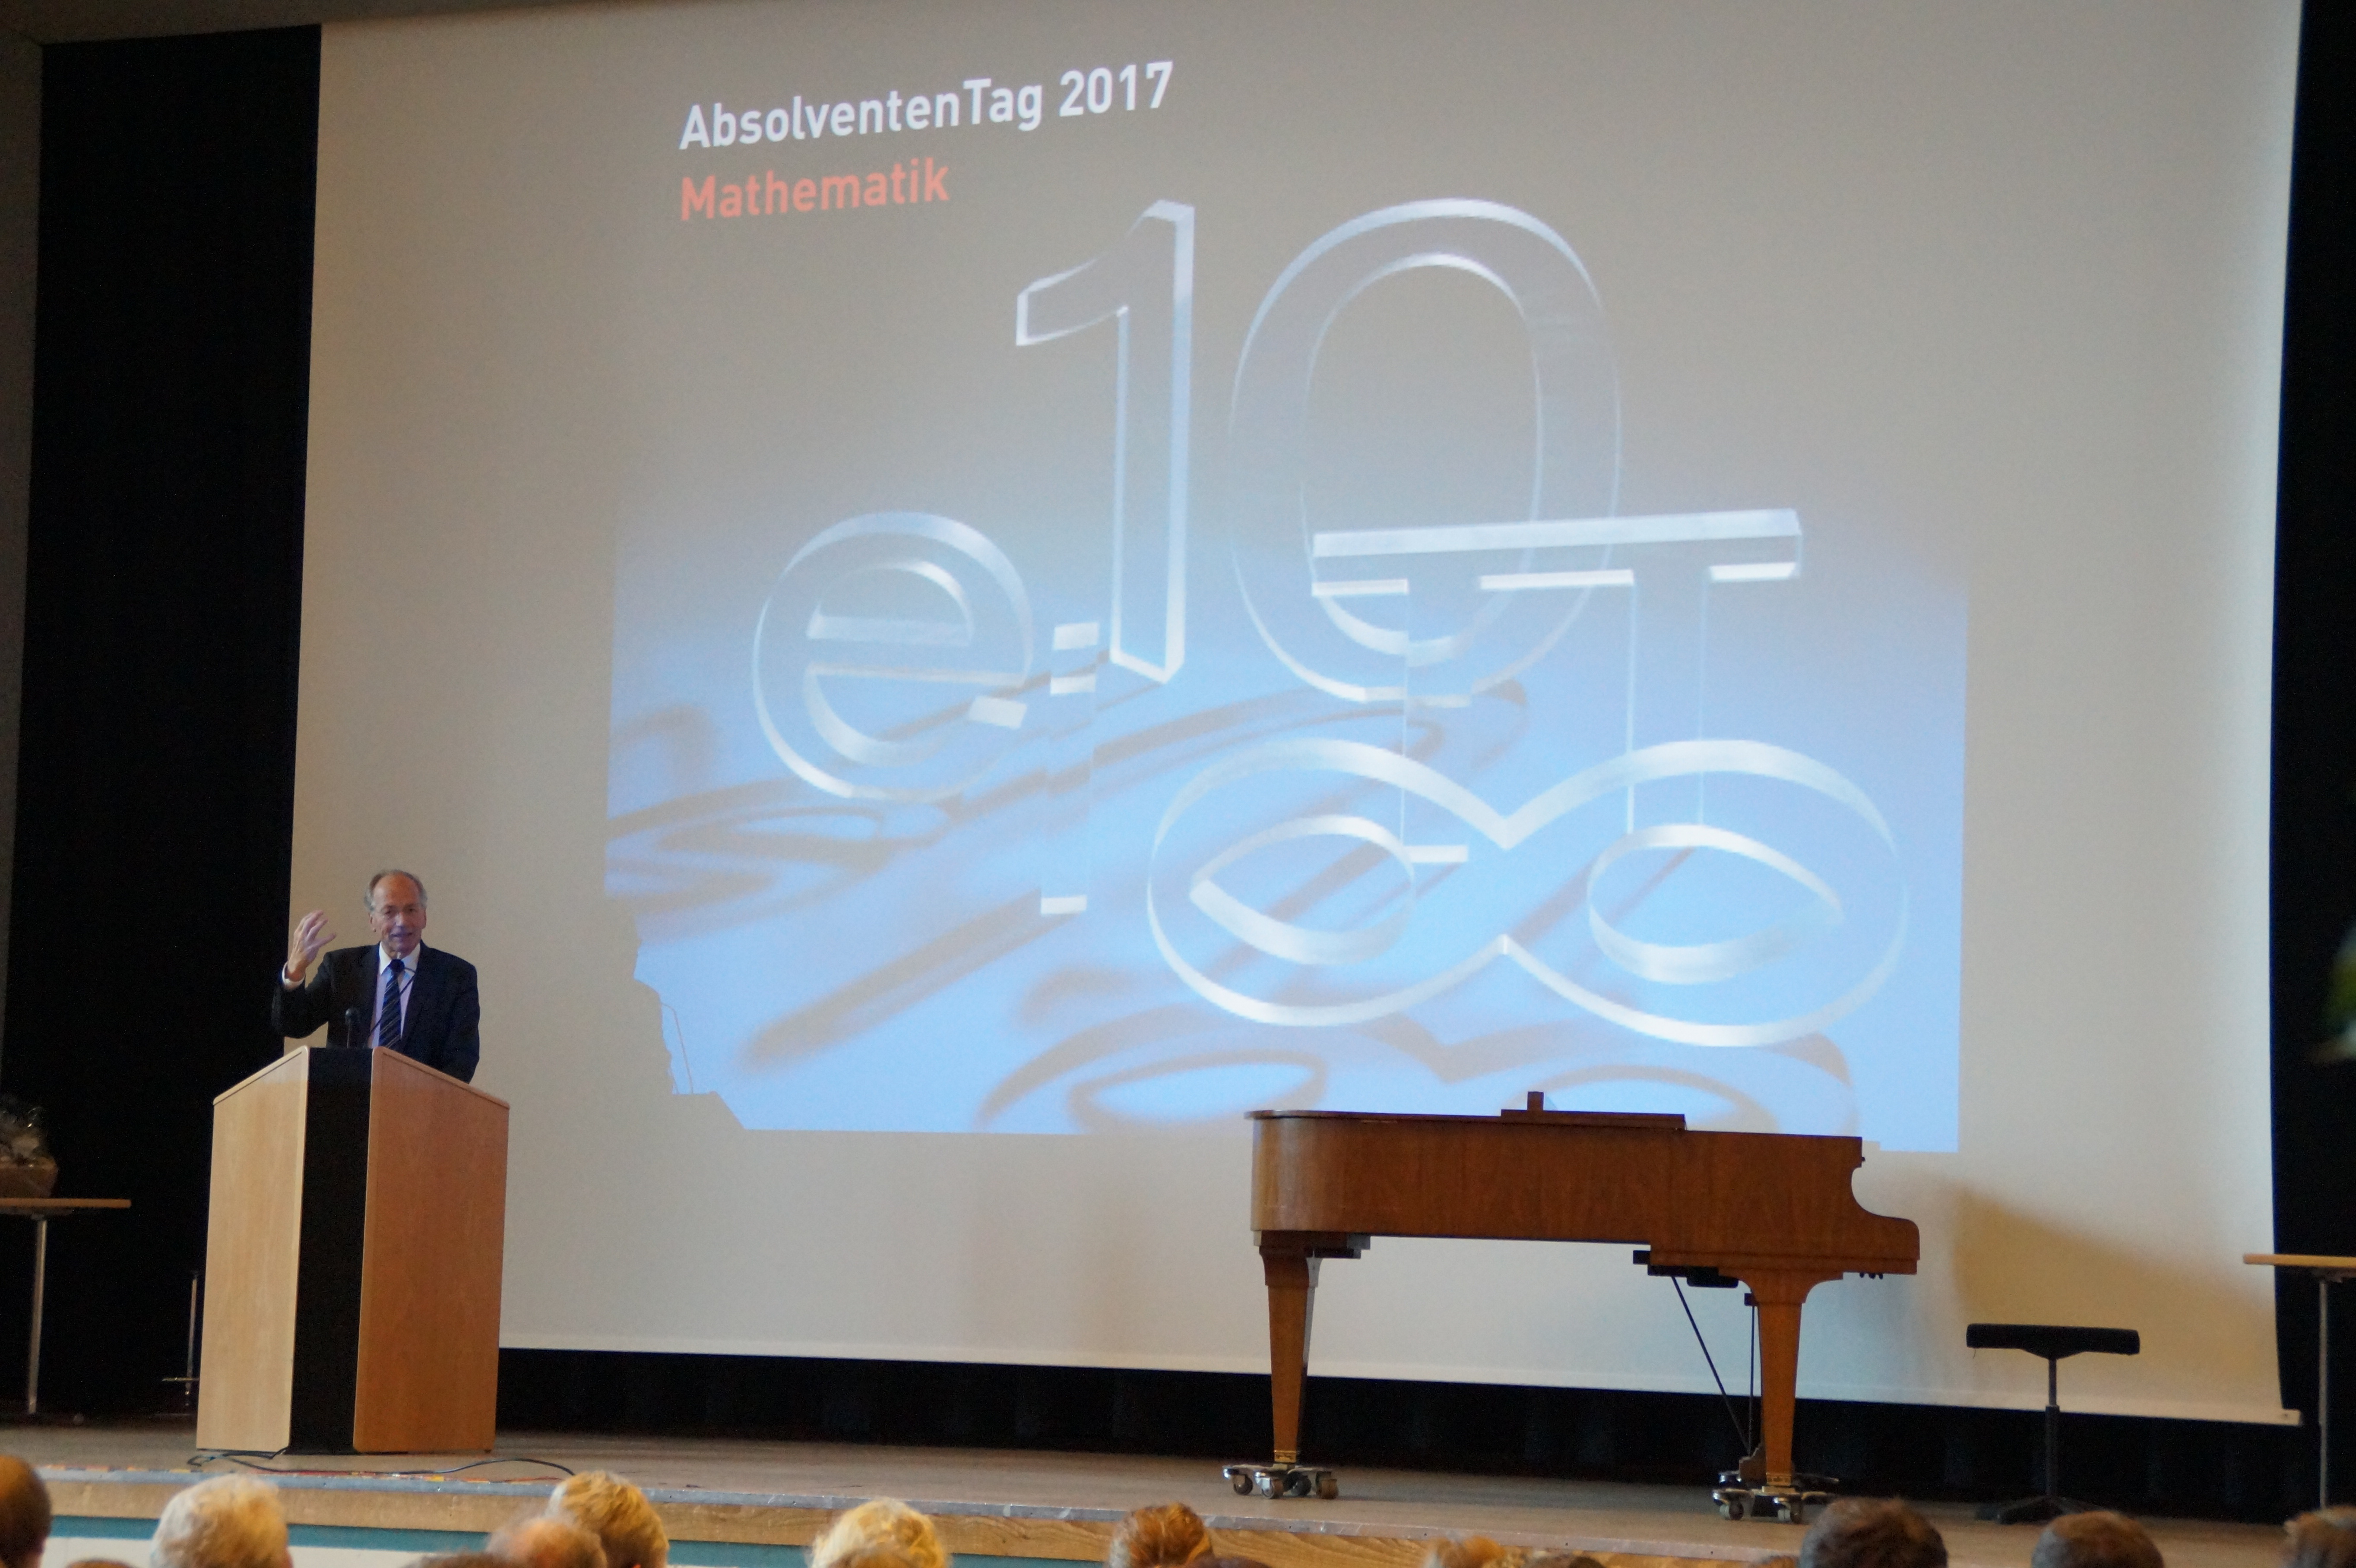 AbsolventenTag 2017